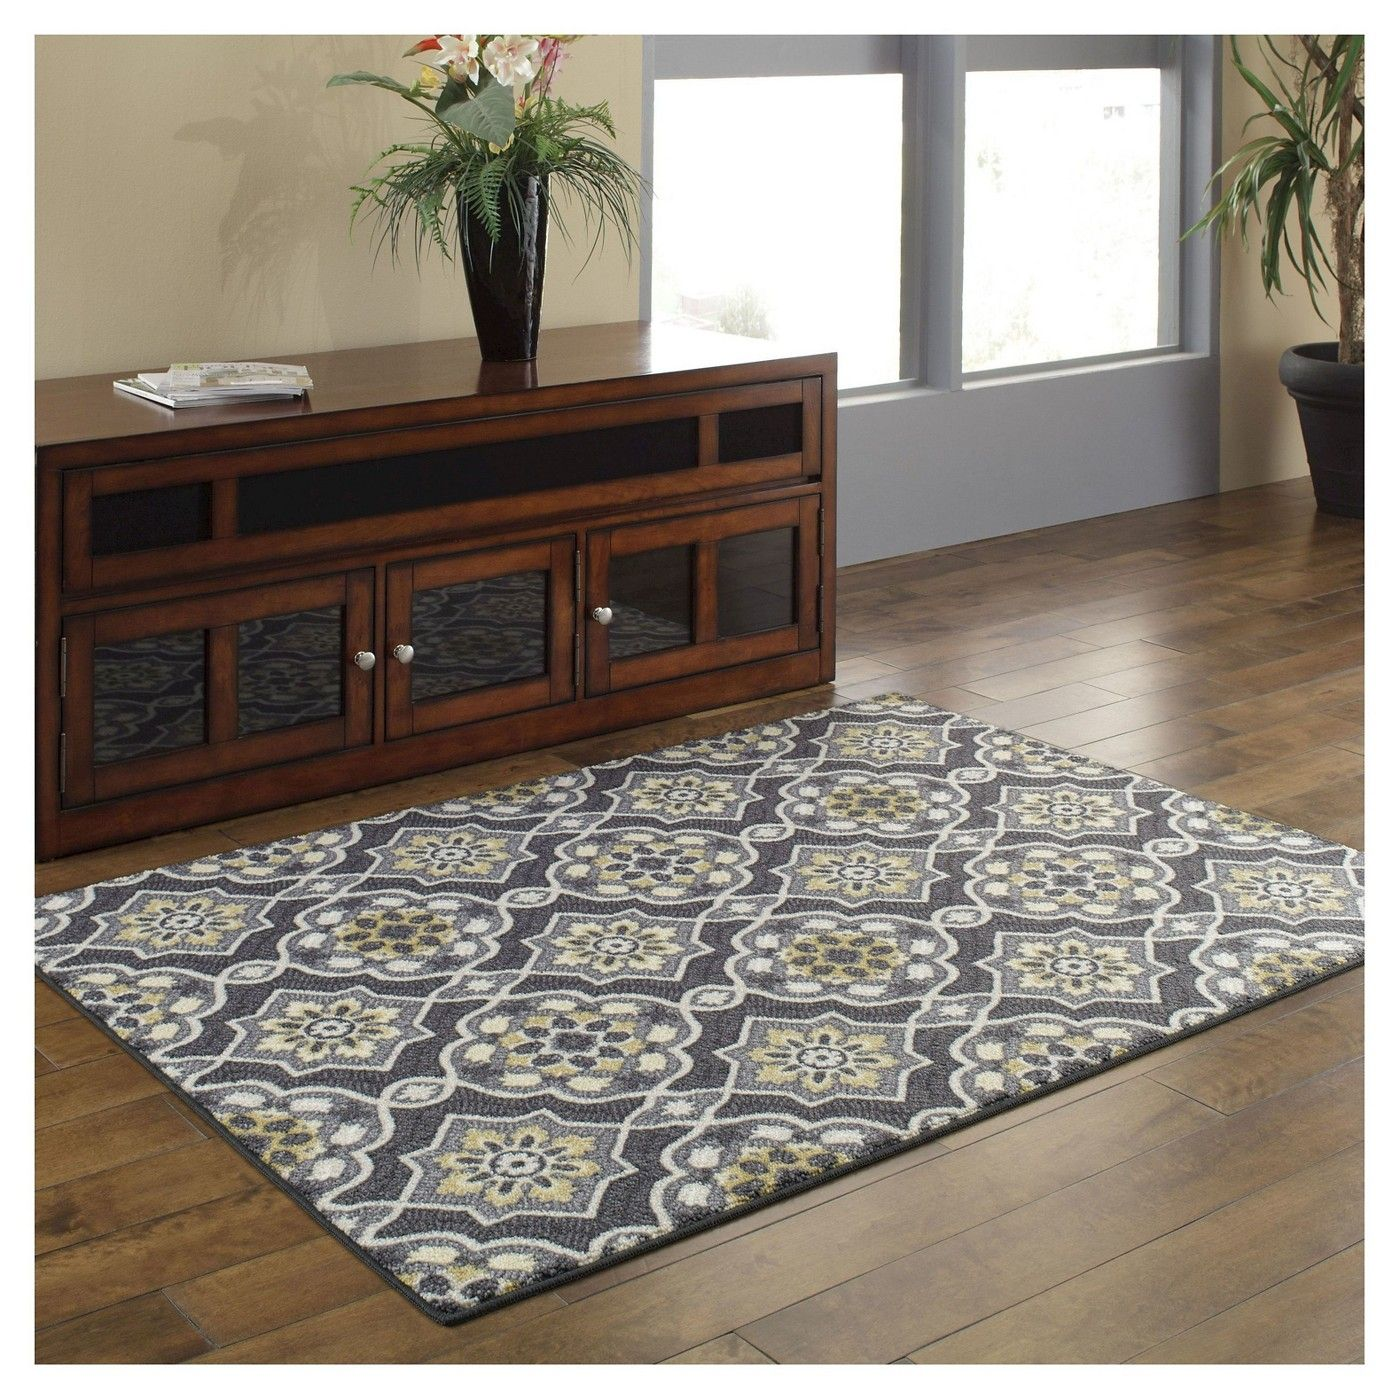 Maples Rugs Rowena Accent Rug Image 3 Of 3 Maples Rugs Accent Rugs Target Rug